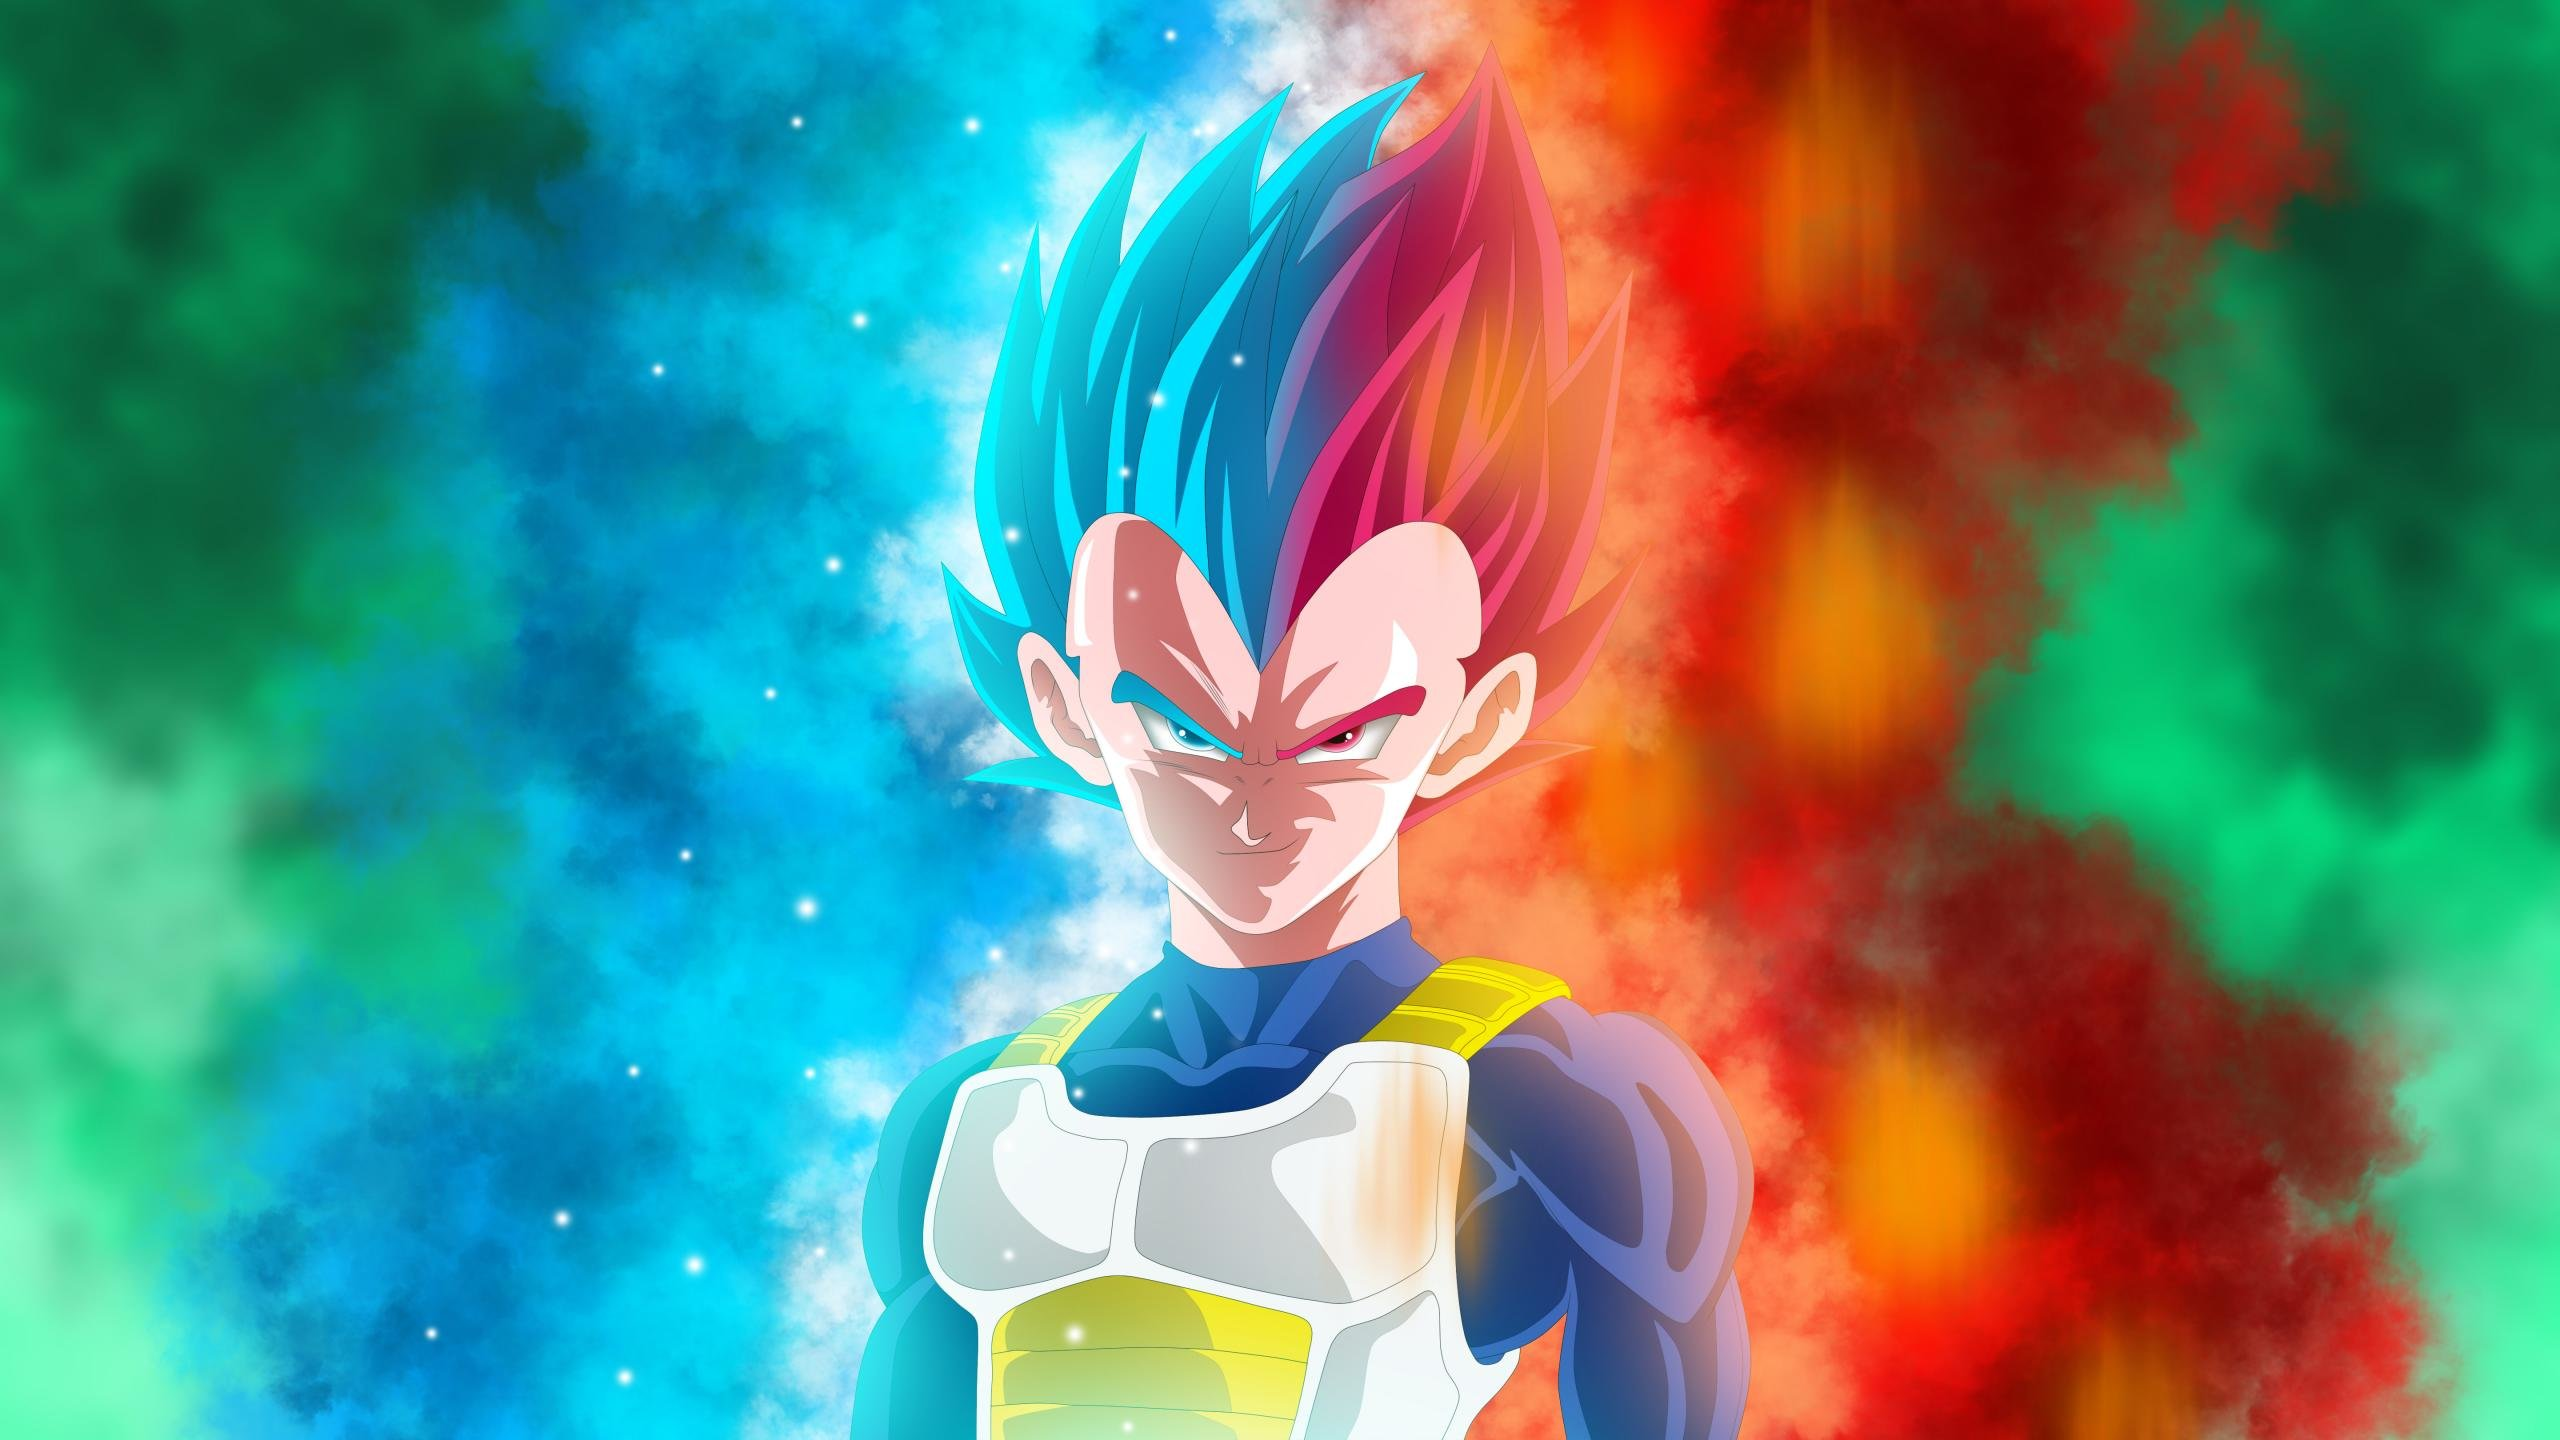 Free Download Dragon Ball Super Wallpaper ID242715 Hd 2560x1440 For Desktop